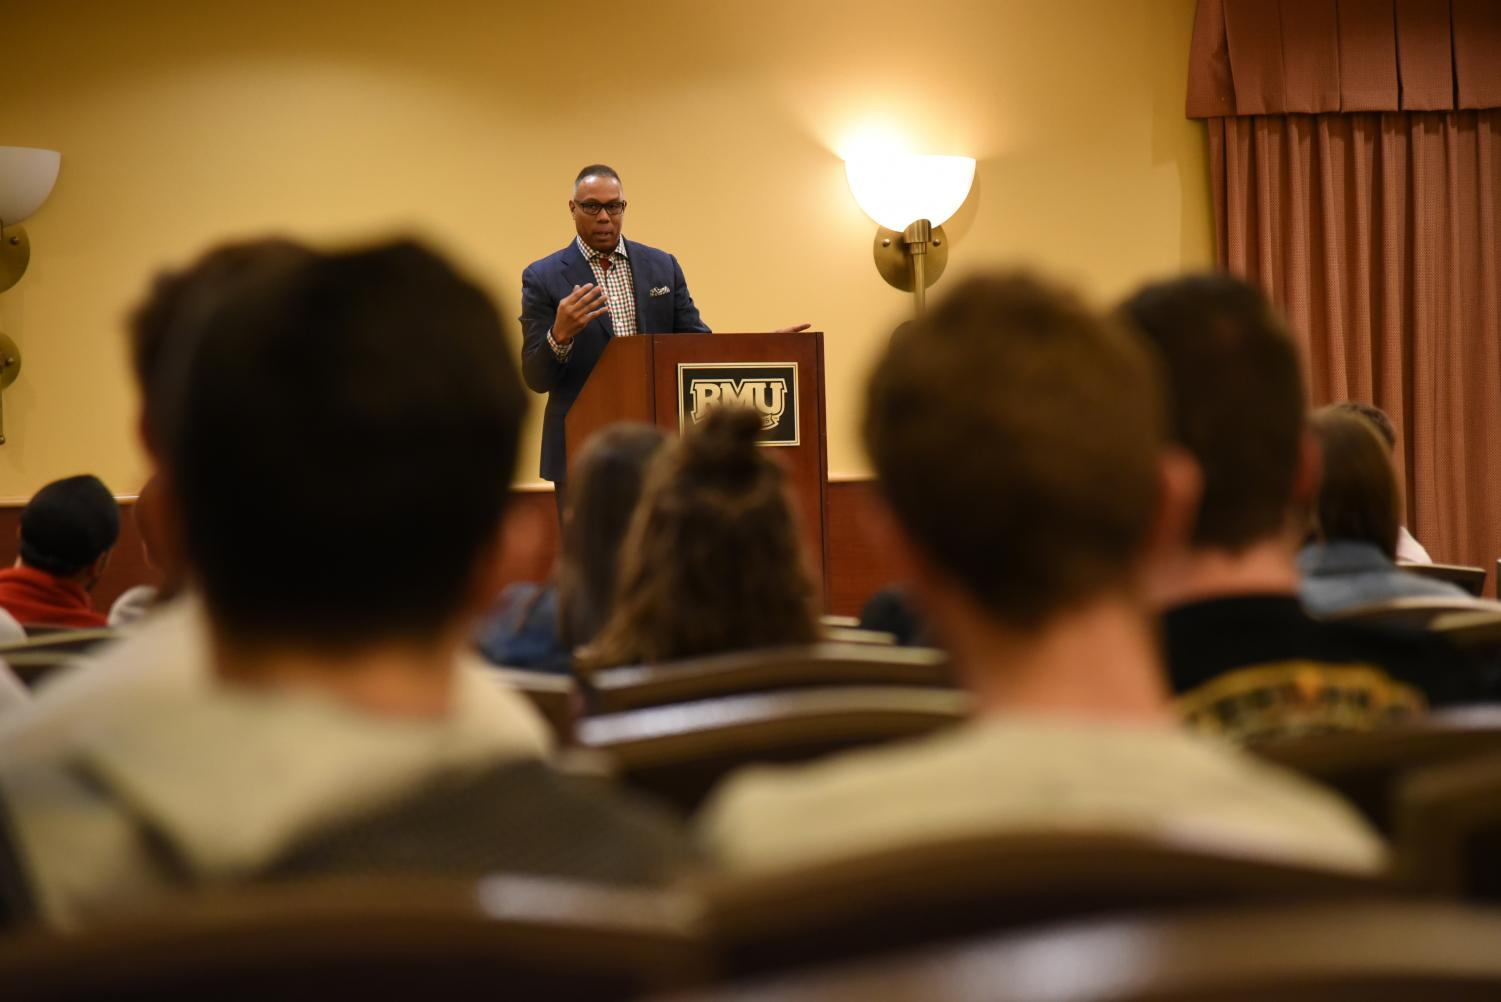 ESPN's Jay Harris speaks at a Greek Life event hosted by Robert Morris University in Yorktown Hall on March 19, 2019. Photo Credit: (RMU Sentry Media/Melanie Hulse)